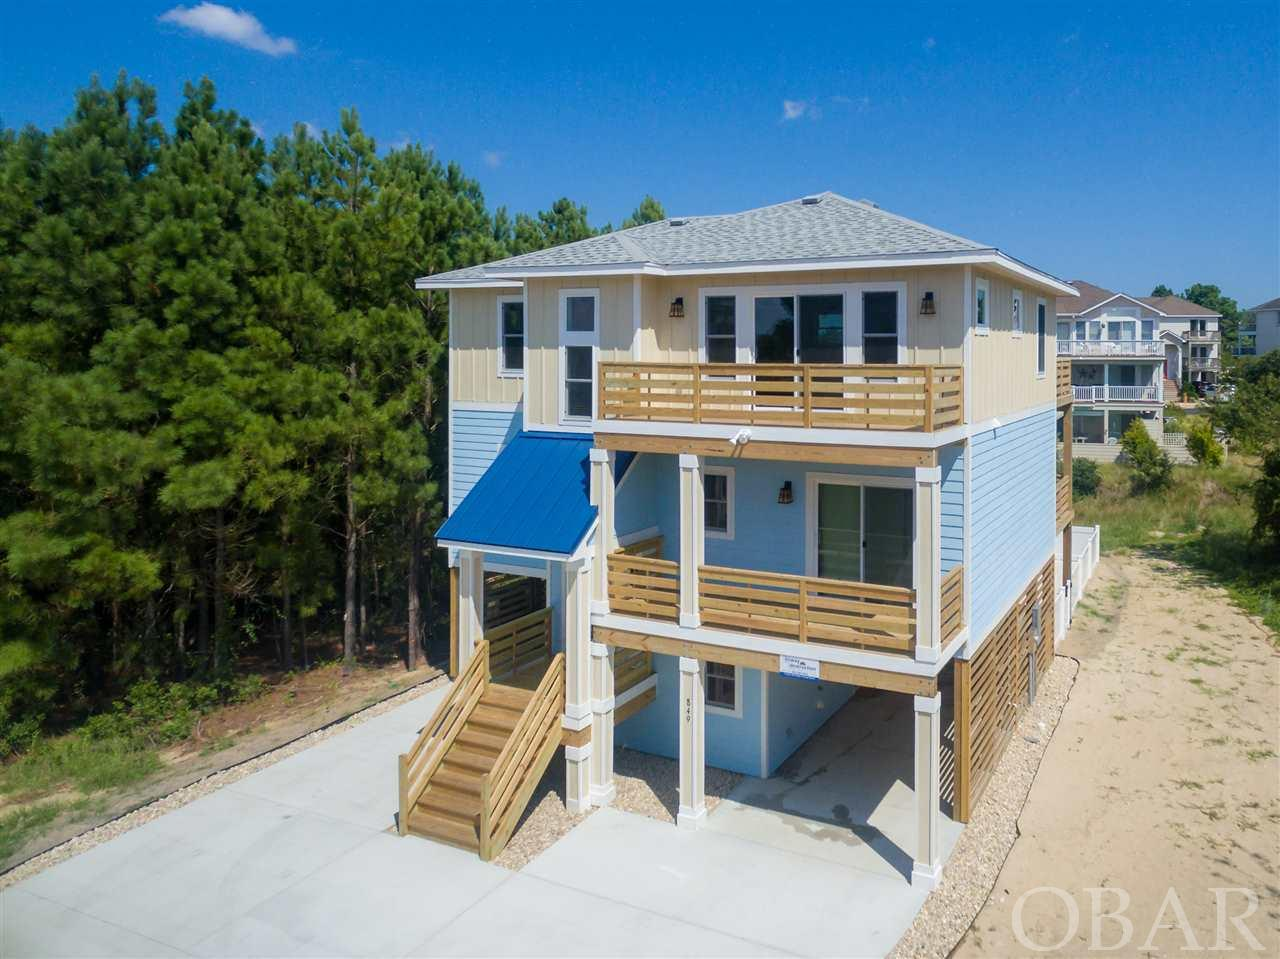 849 Monteray Drive, Corolla, NC 27927, 4 Bedrooms Bedrooms, ,4 BathroomsBathrooms,Residential,For sale,Monteray Drive,104564